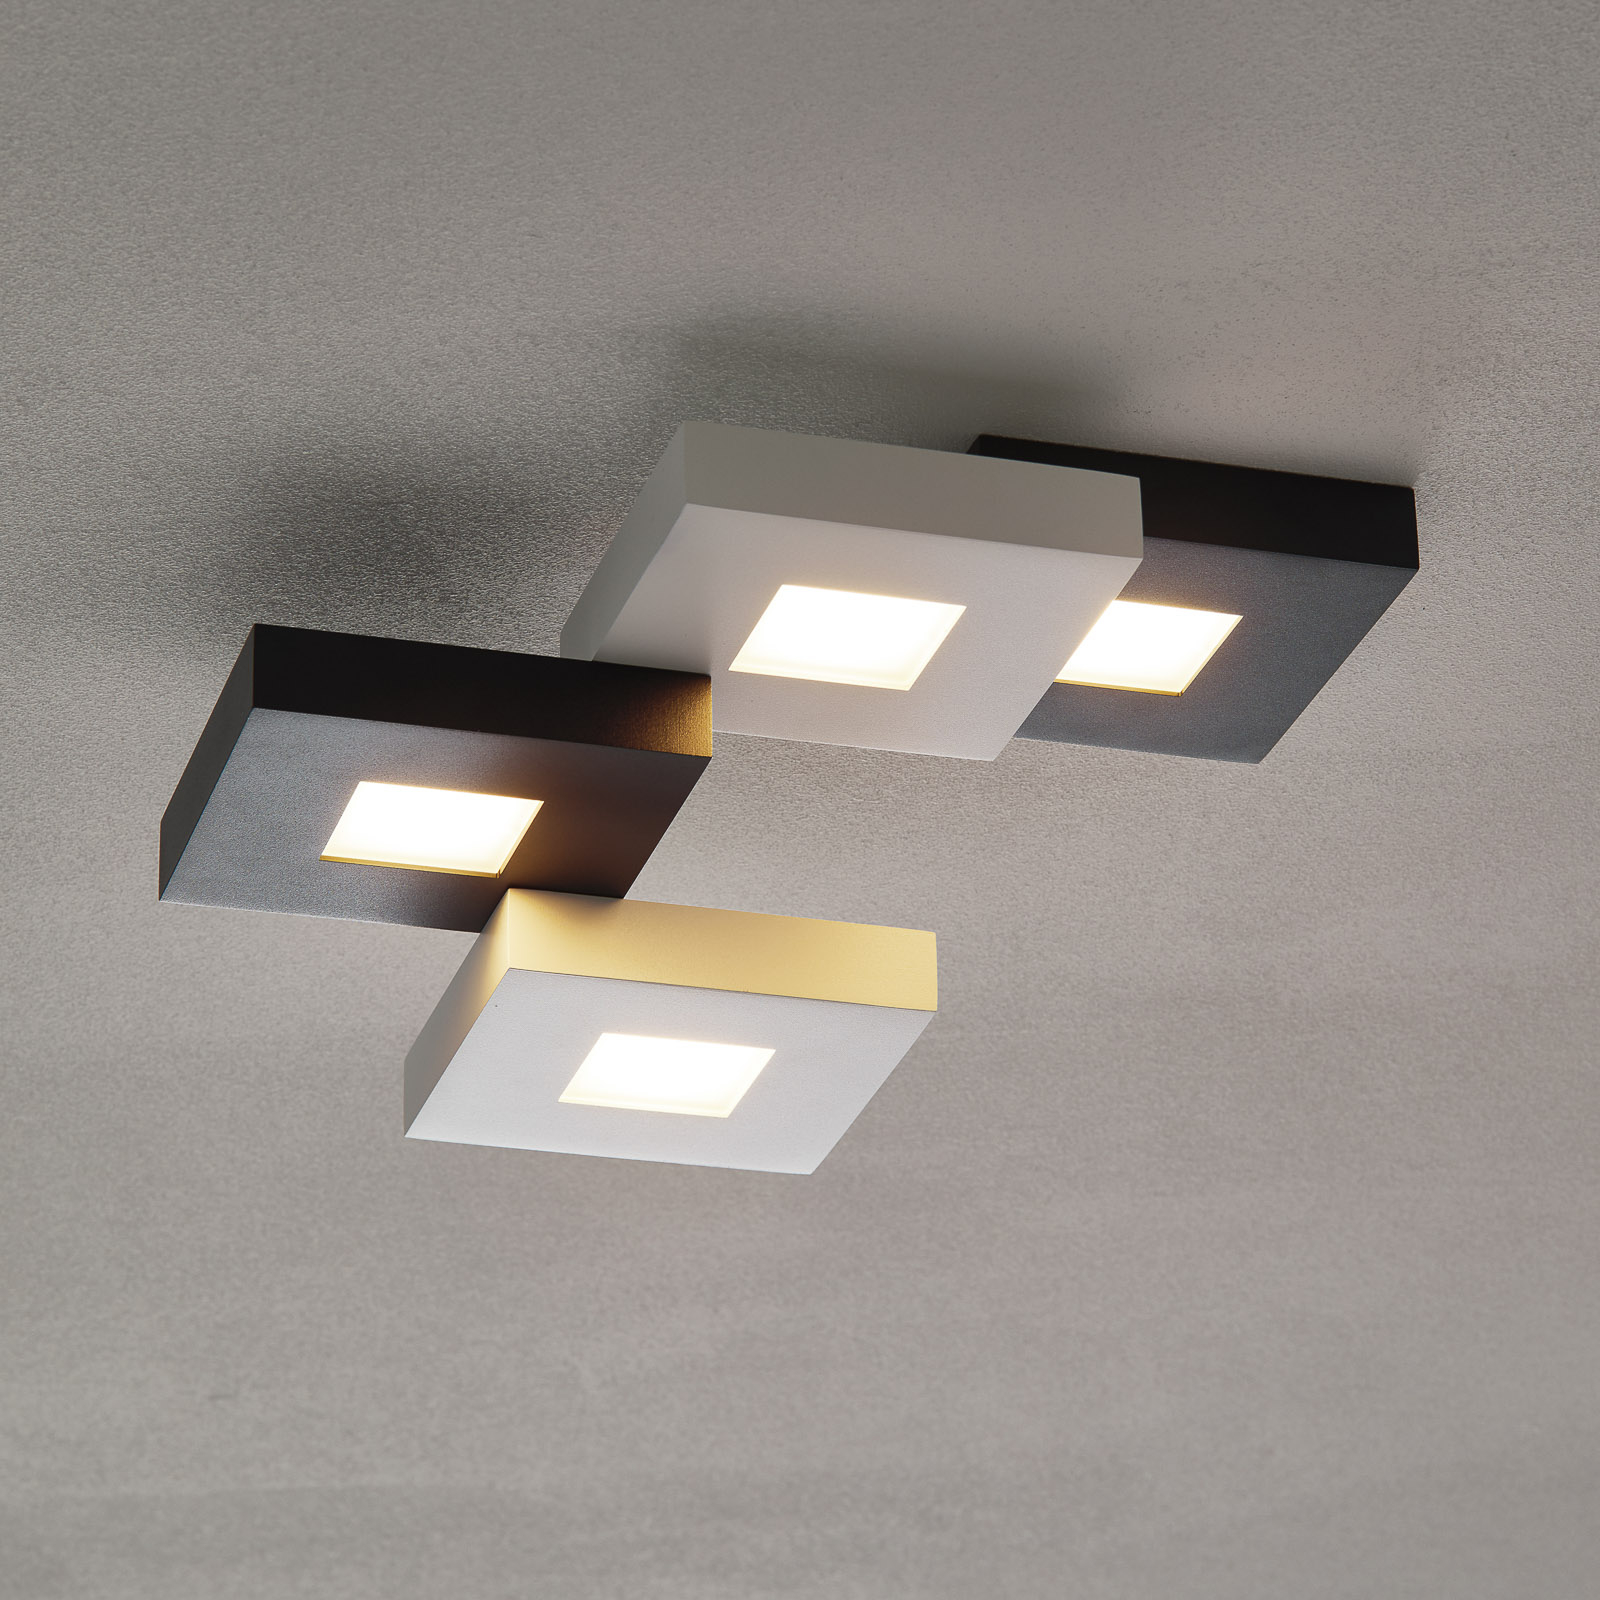 Cubus - LED-plafondlamp in zwart-wit, 4-l.